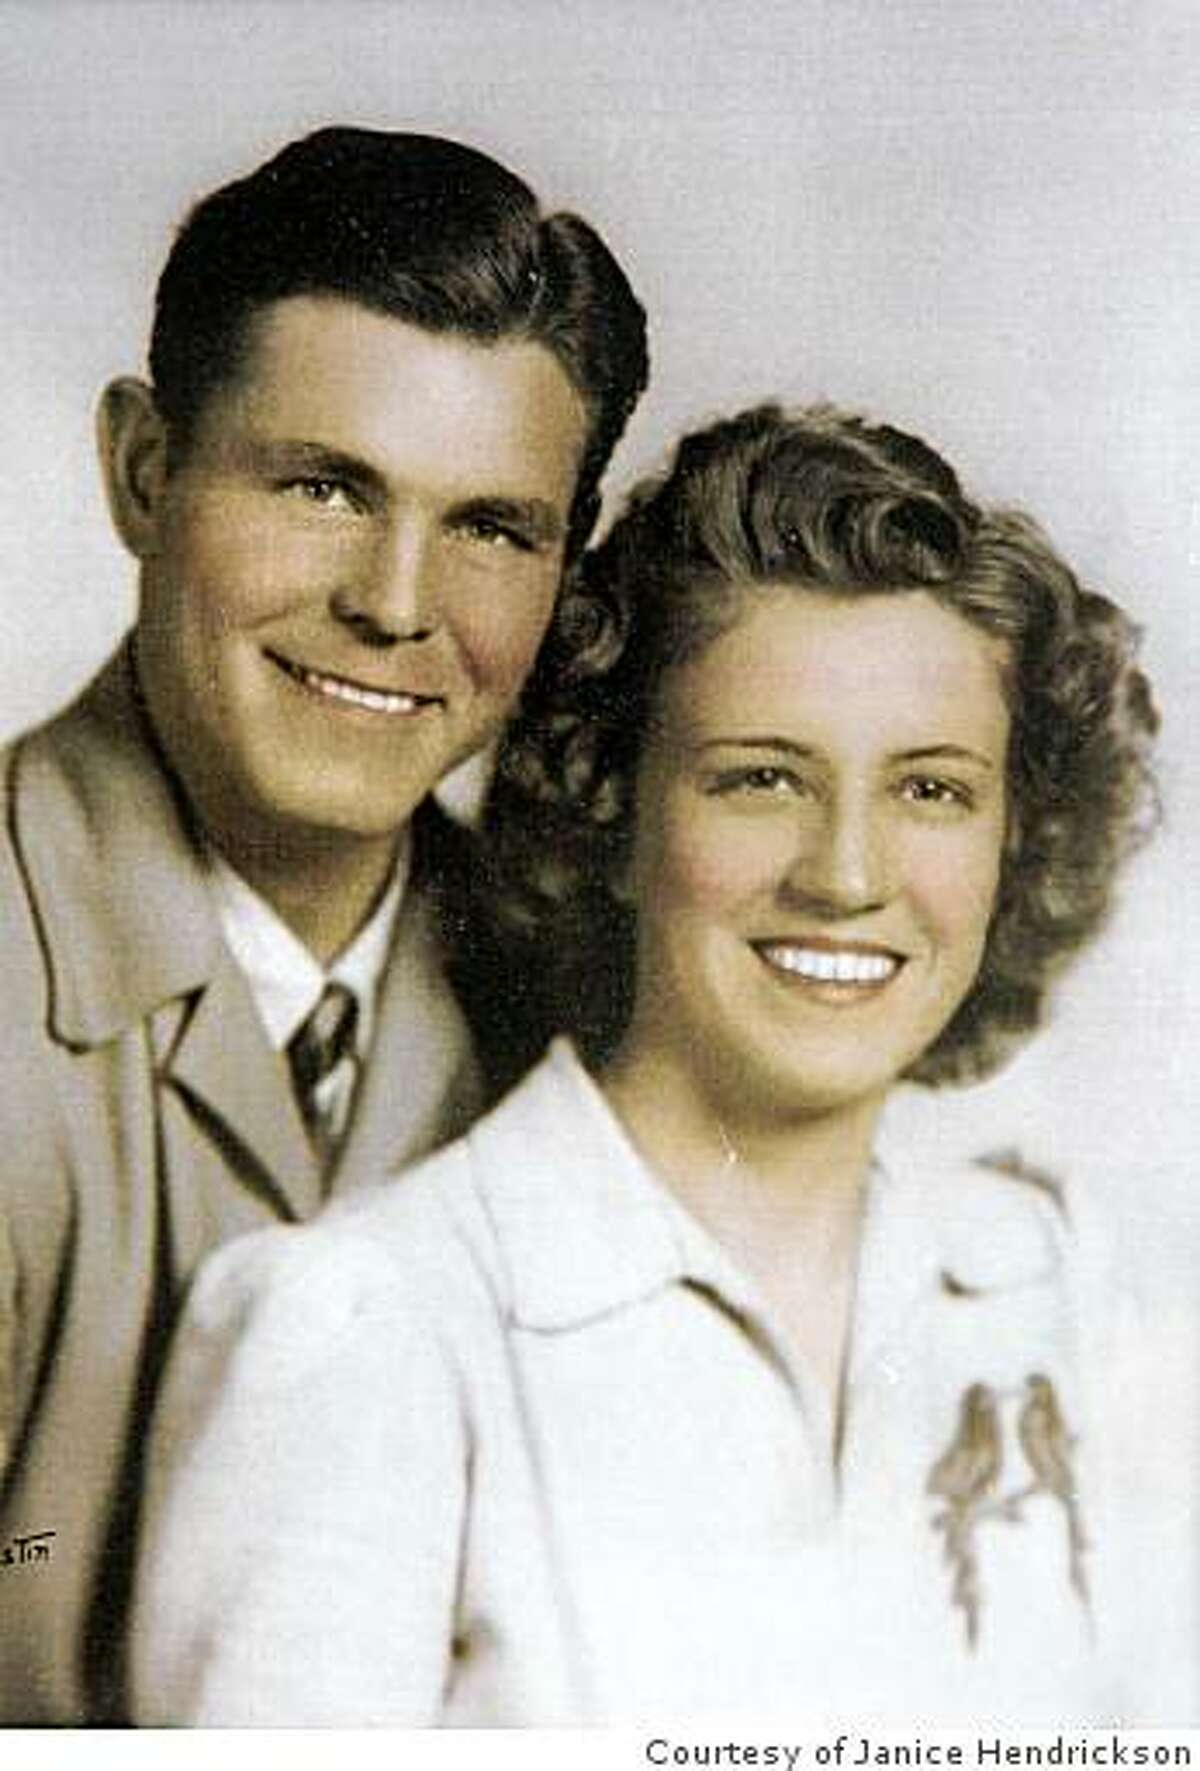 The 1942 or 1943 wedding photo of Guy Ward Hendrickson and his wife Helen Hendrickson provided by their daughter Janice Hendrickson during a press conference Janice held to dispute her step-sister's claim that their father, Guy Ward Hendrickson was the Zodiac killer at the visitor's center in Marin City, Calif. on Friday, May 1, 2009.